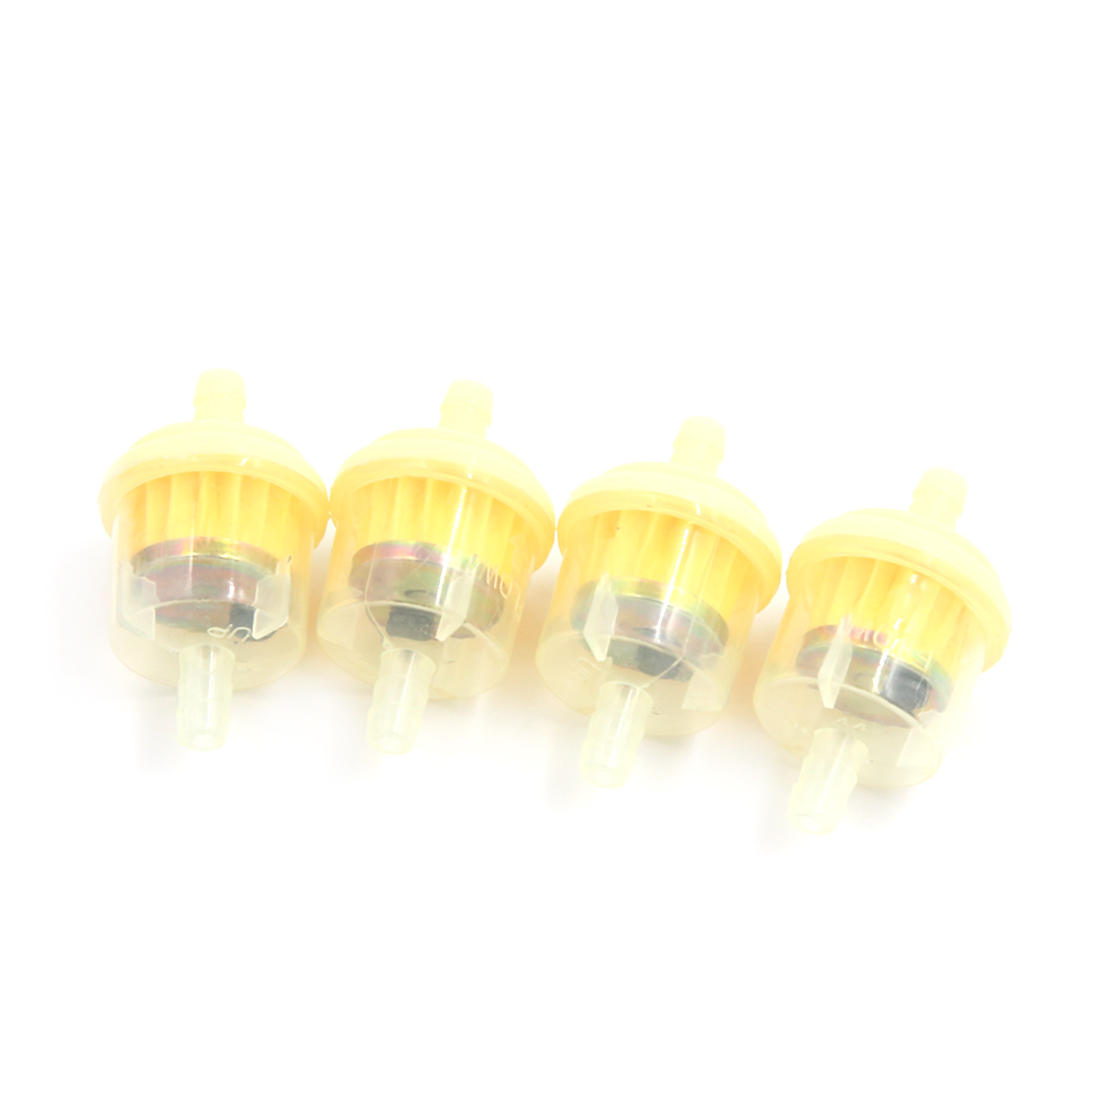 4Pcs Universal Motorcycle Scooter Gasoline Fuel Filter Clear Inline for 7mm Hose